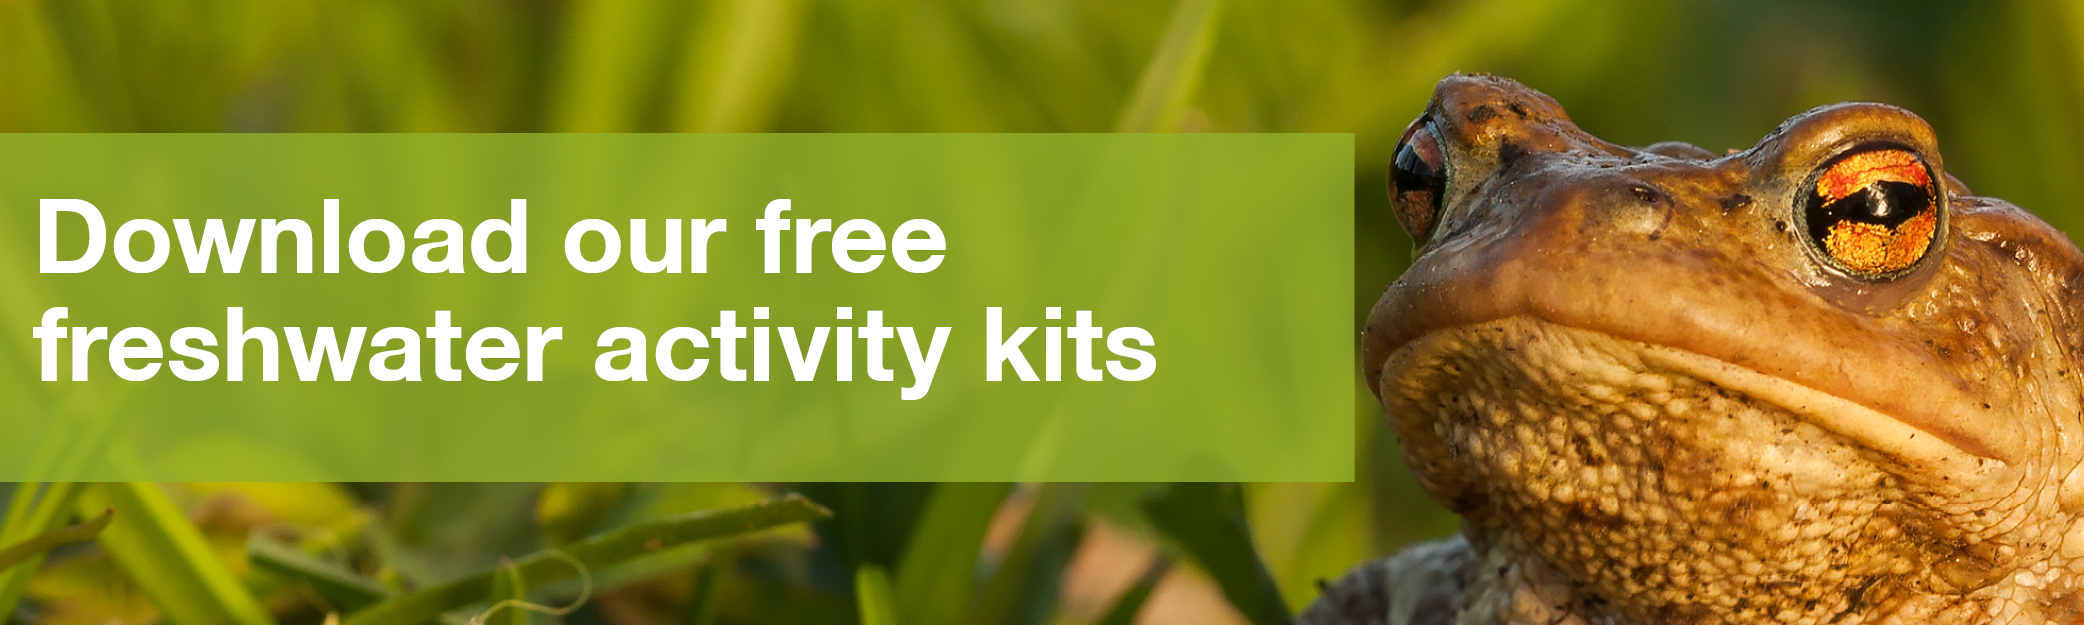 Download activity kits